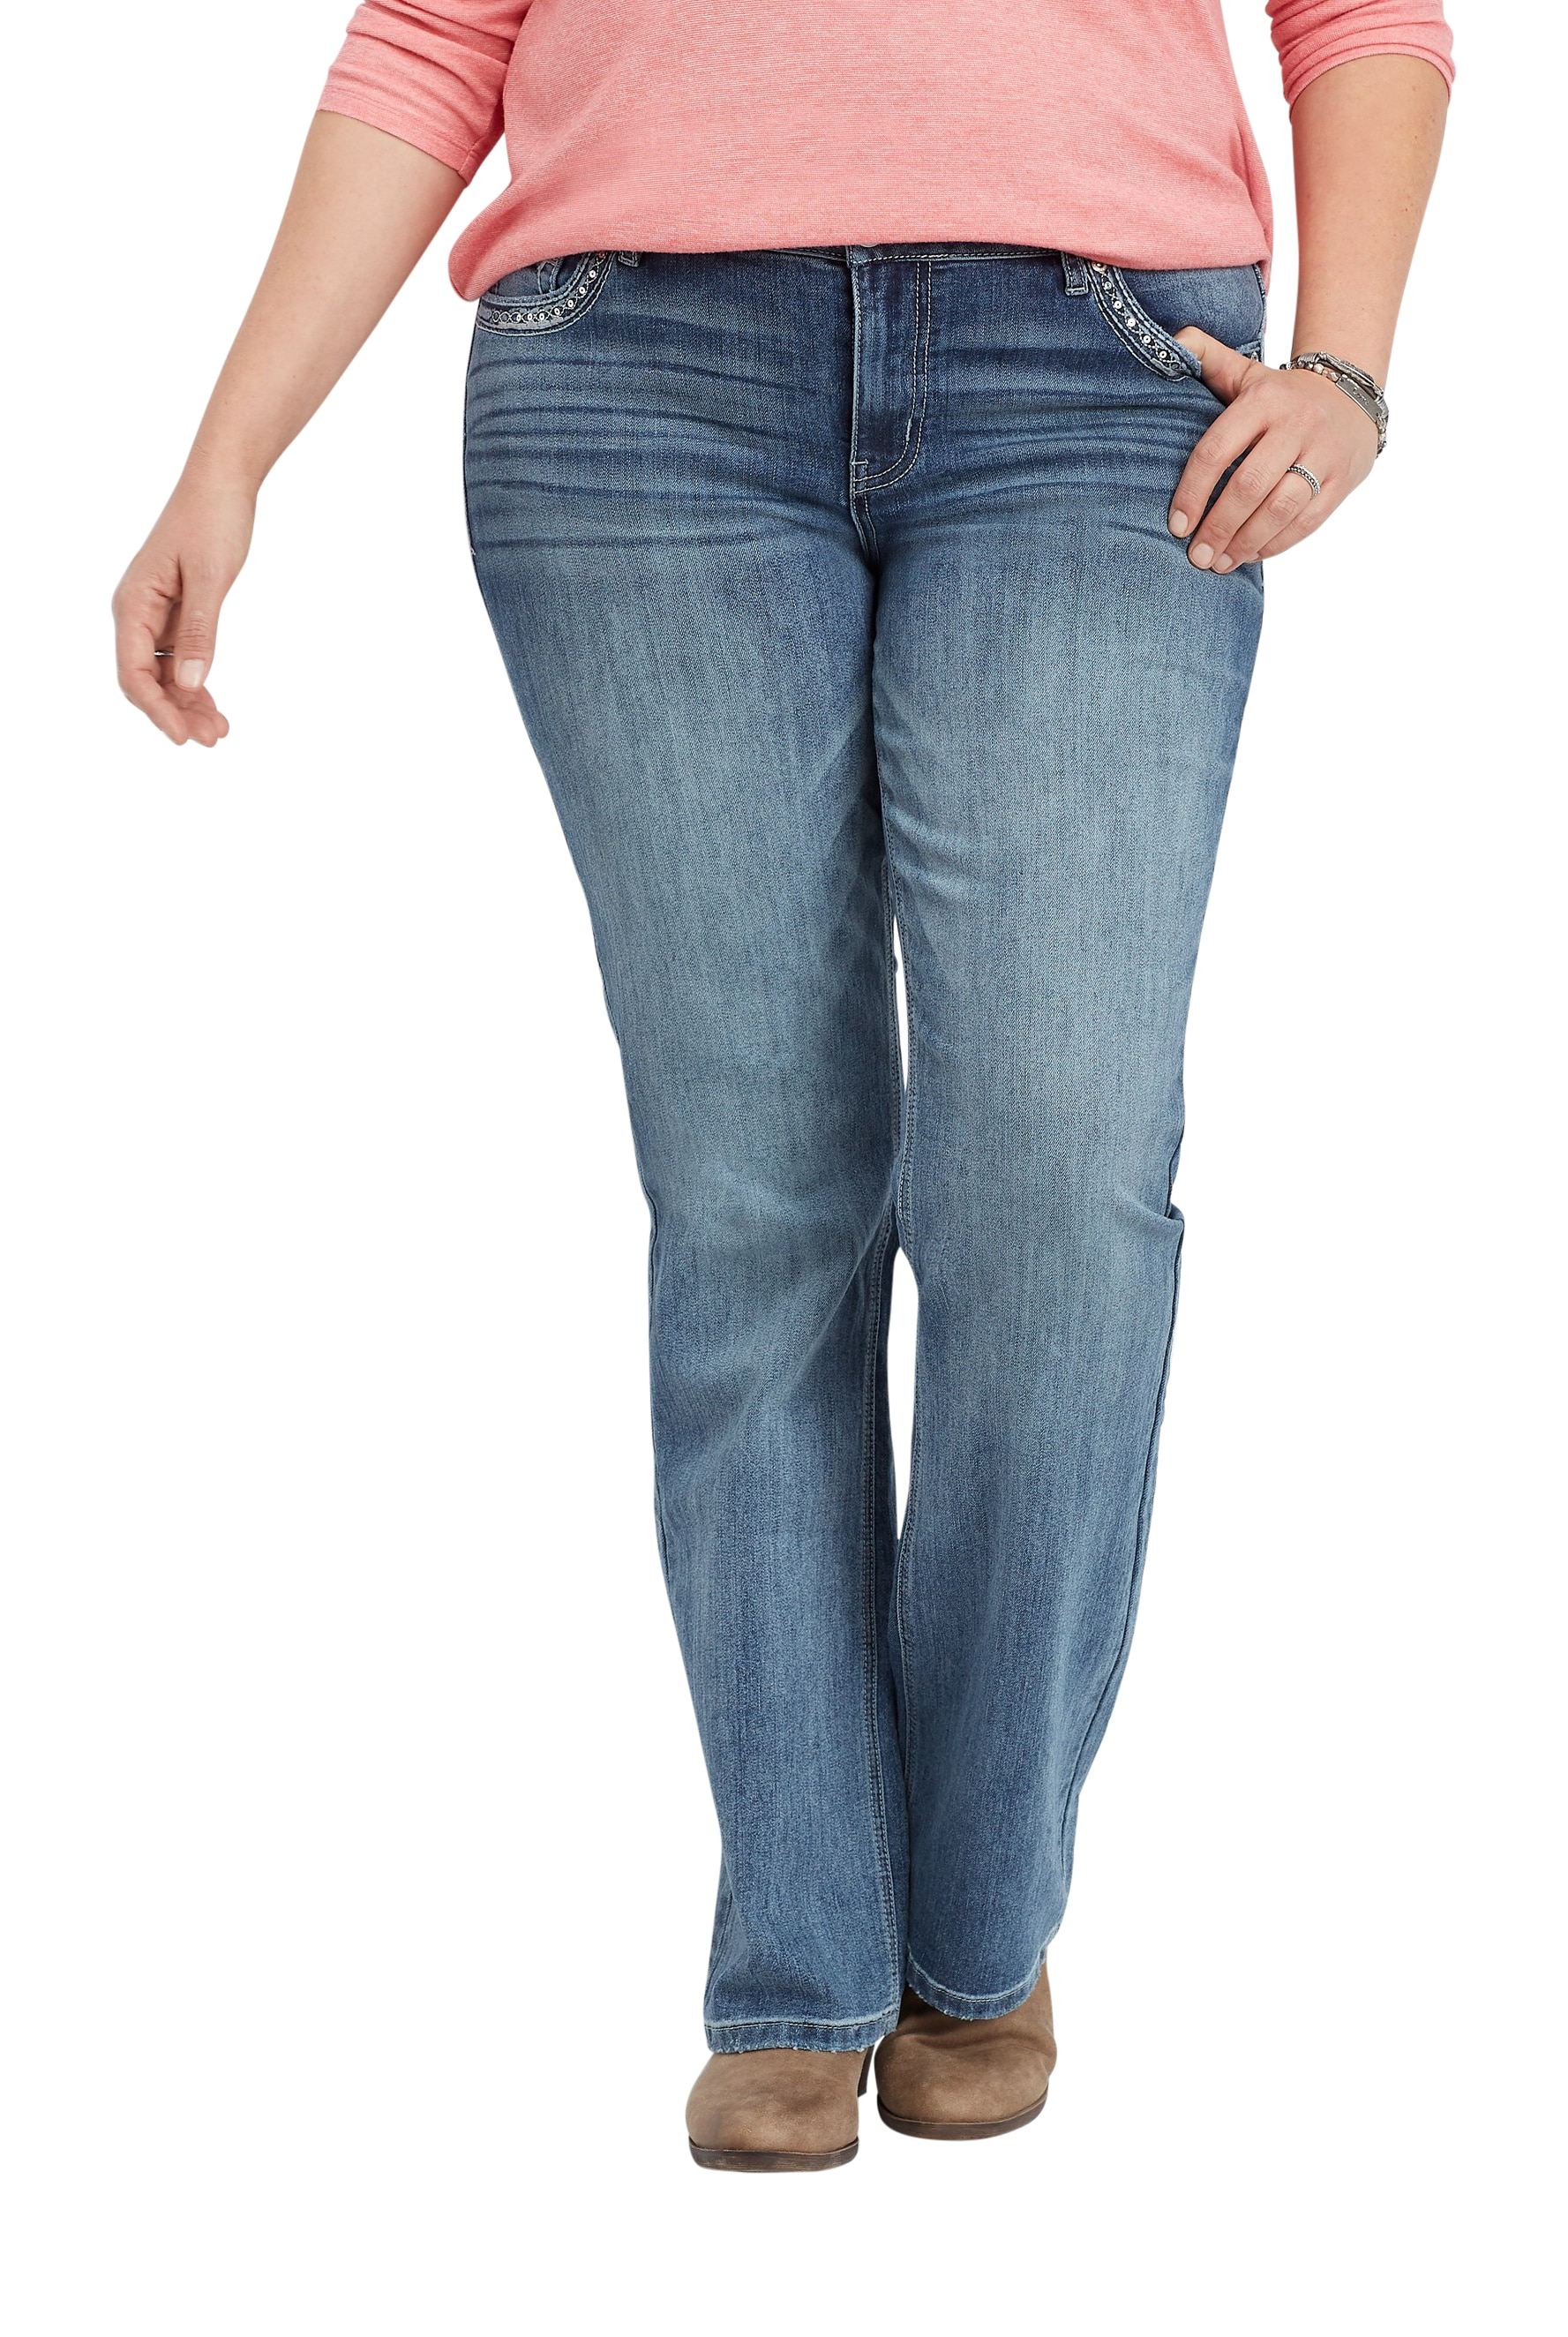 Maurices Women's Slim Boot Jean - Plus Size Embellished Back Pocket